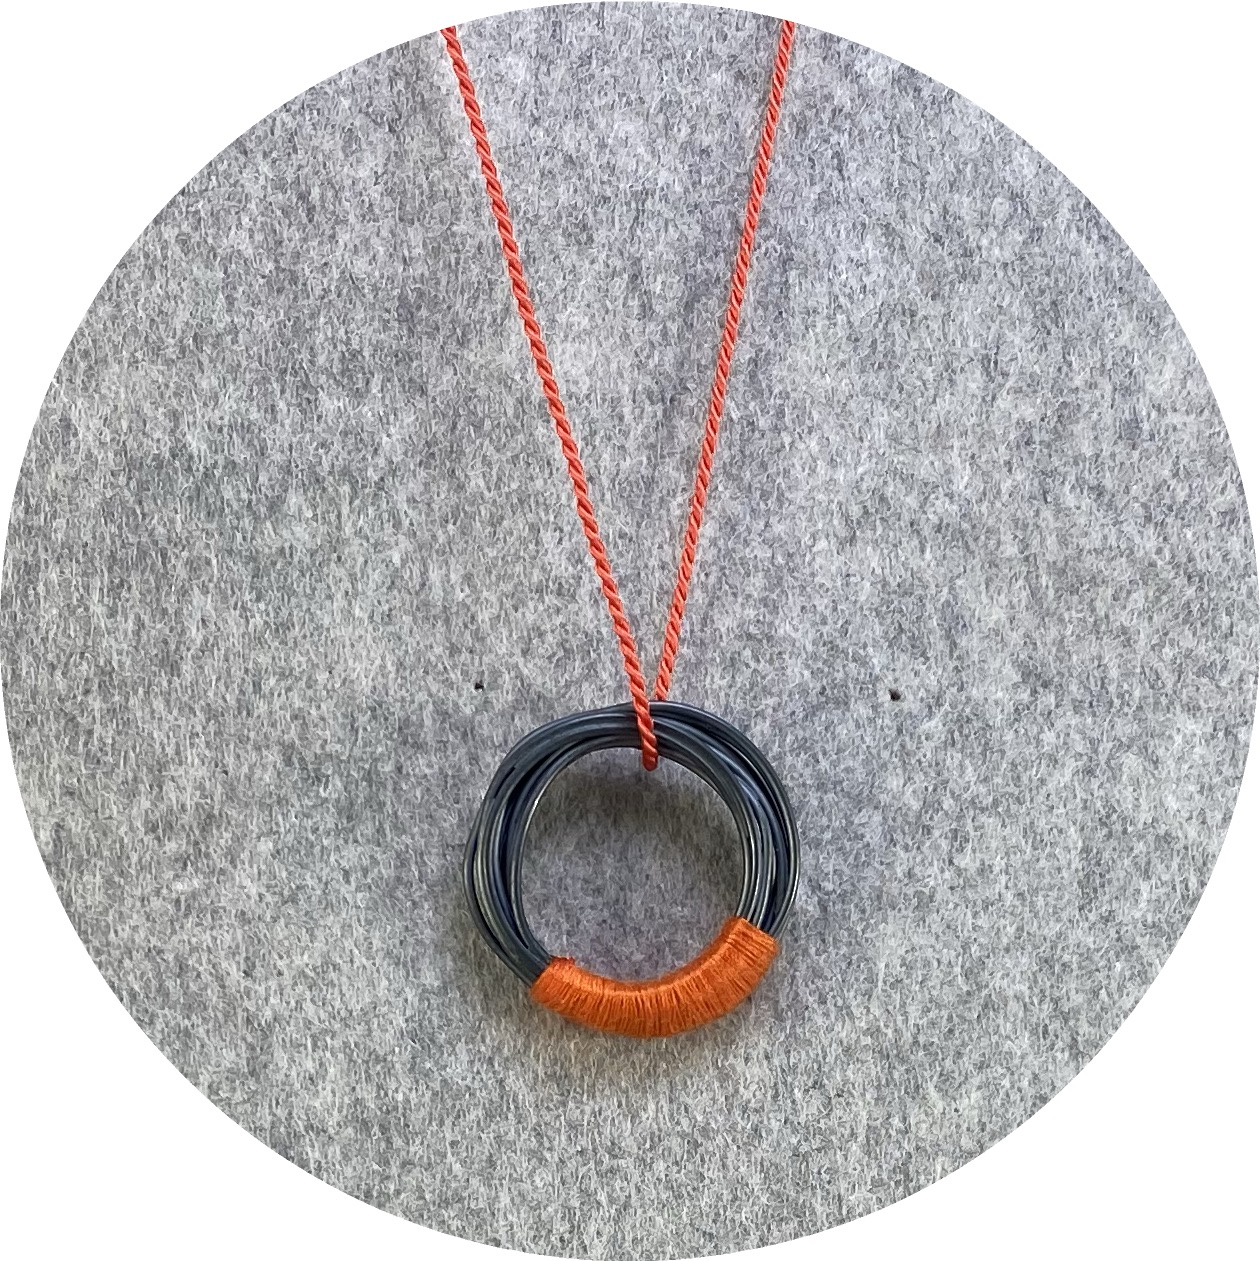 Melissa Gillespie - 'Oxidized Wrapped Coiled Pendant' in Sterling Silver on a Orange Silk Cord